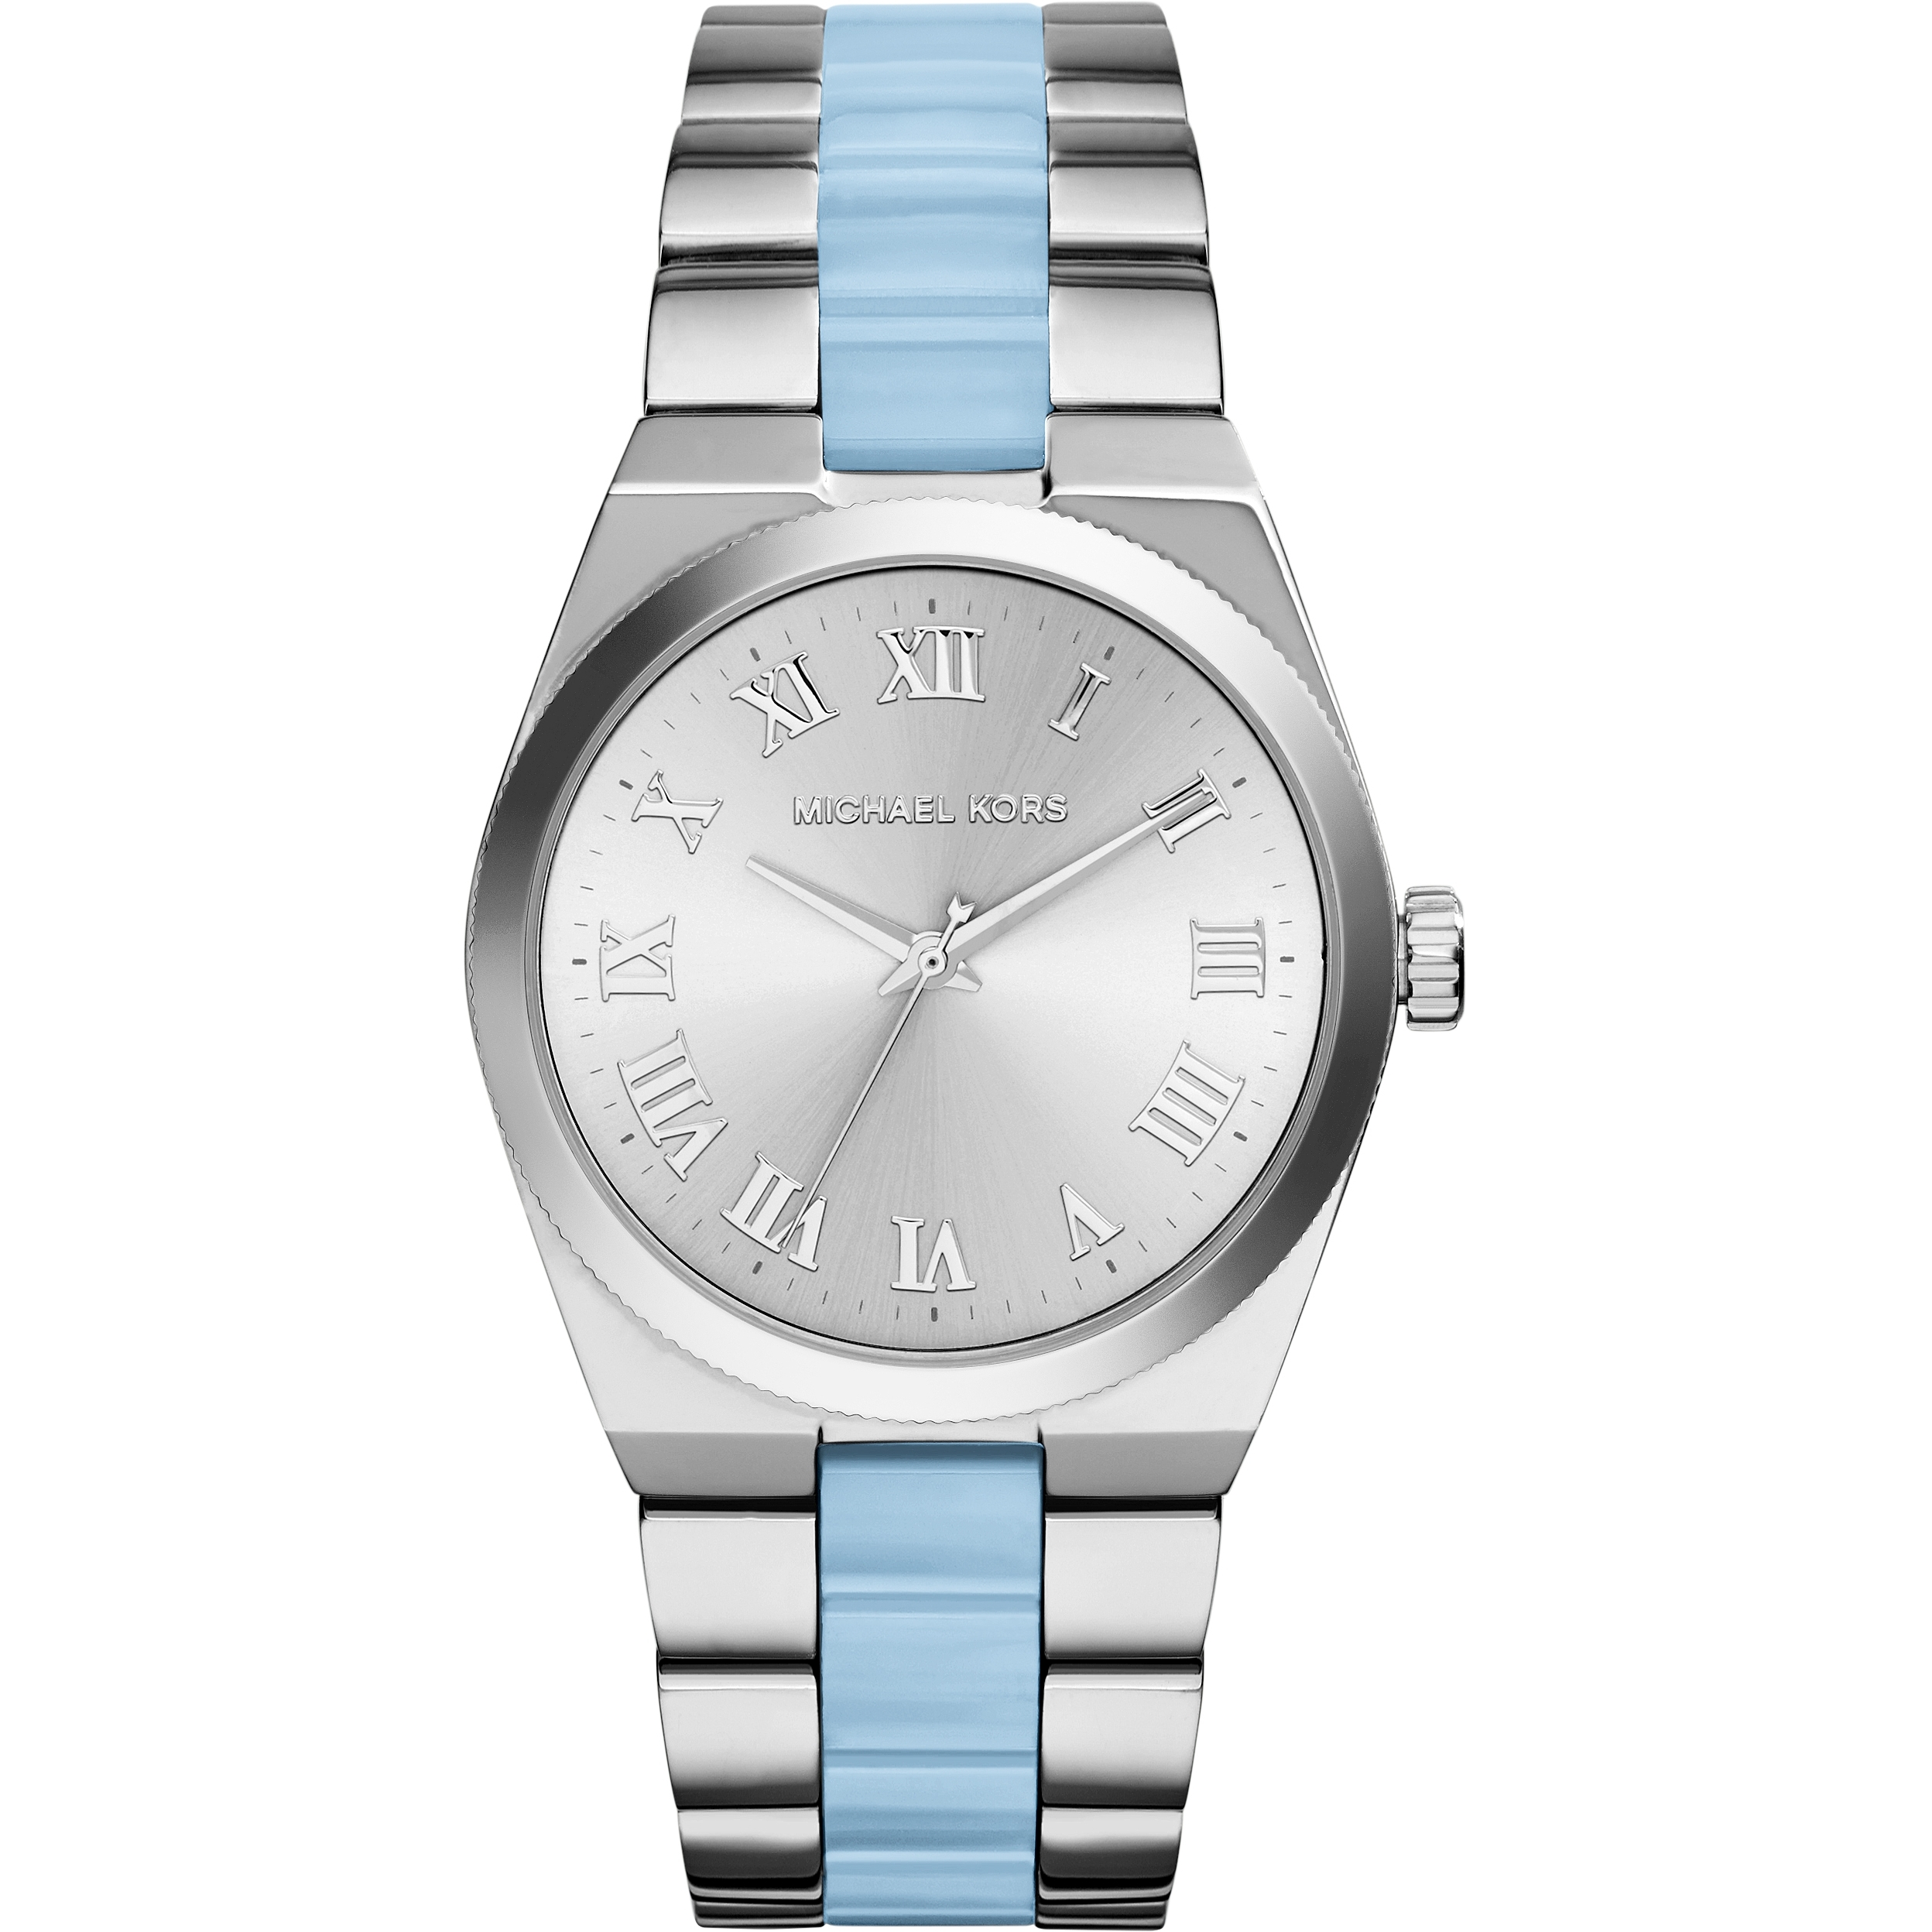 8cfb0aff7684 Ladies Michael Kors Channing Watch (MK6150)